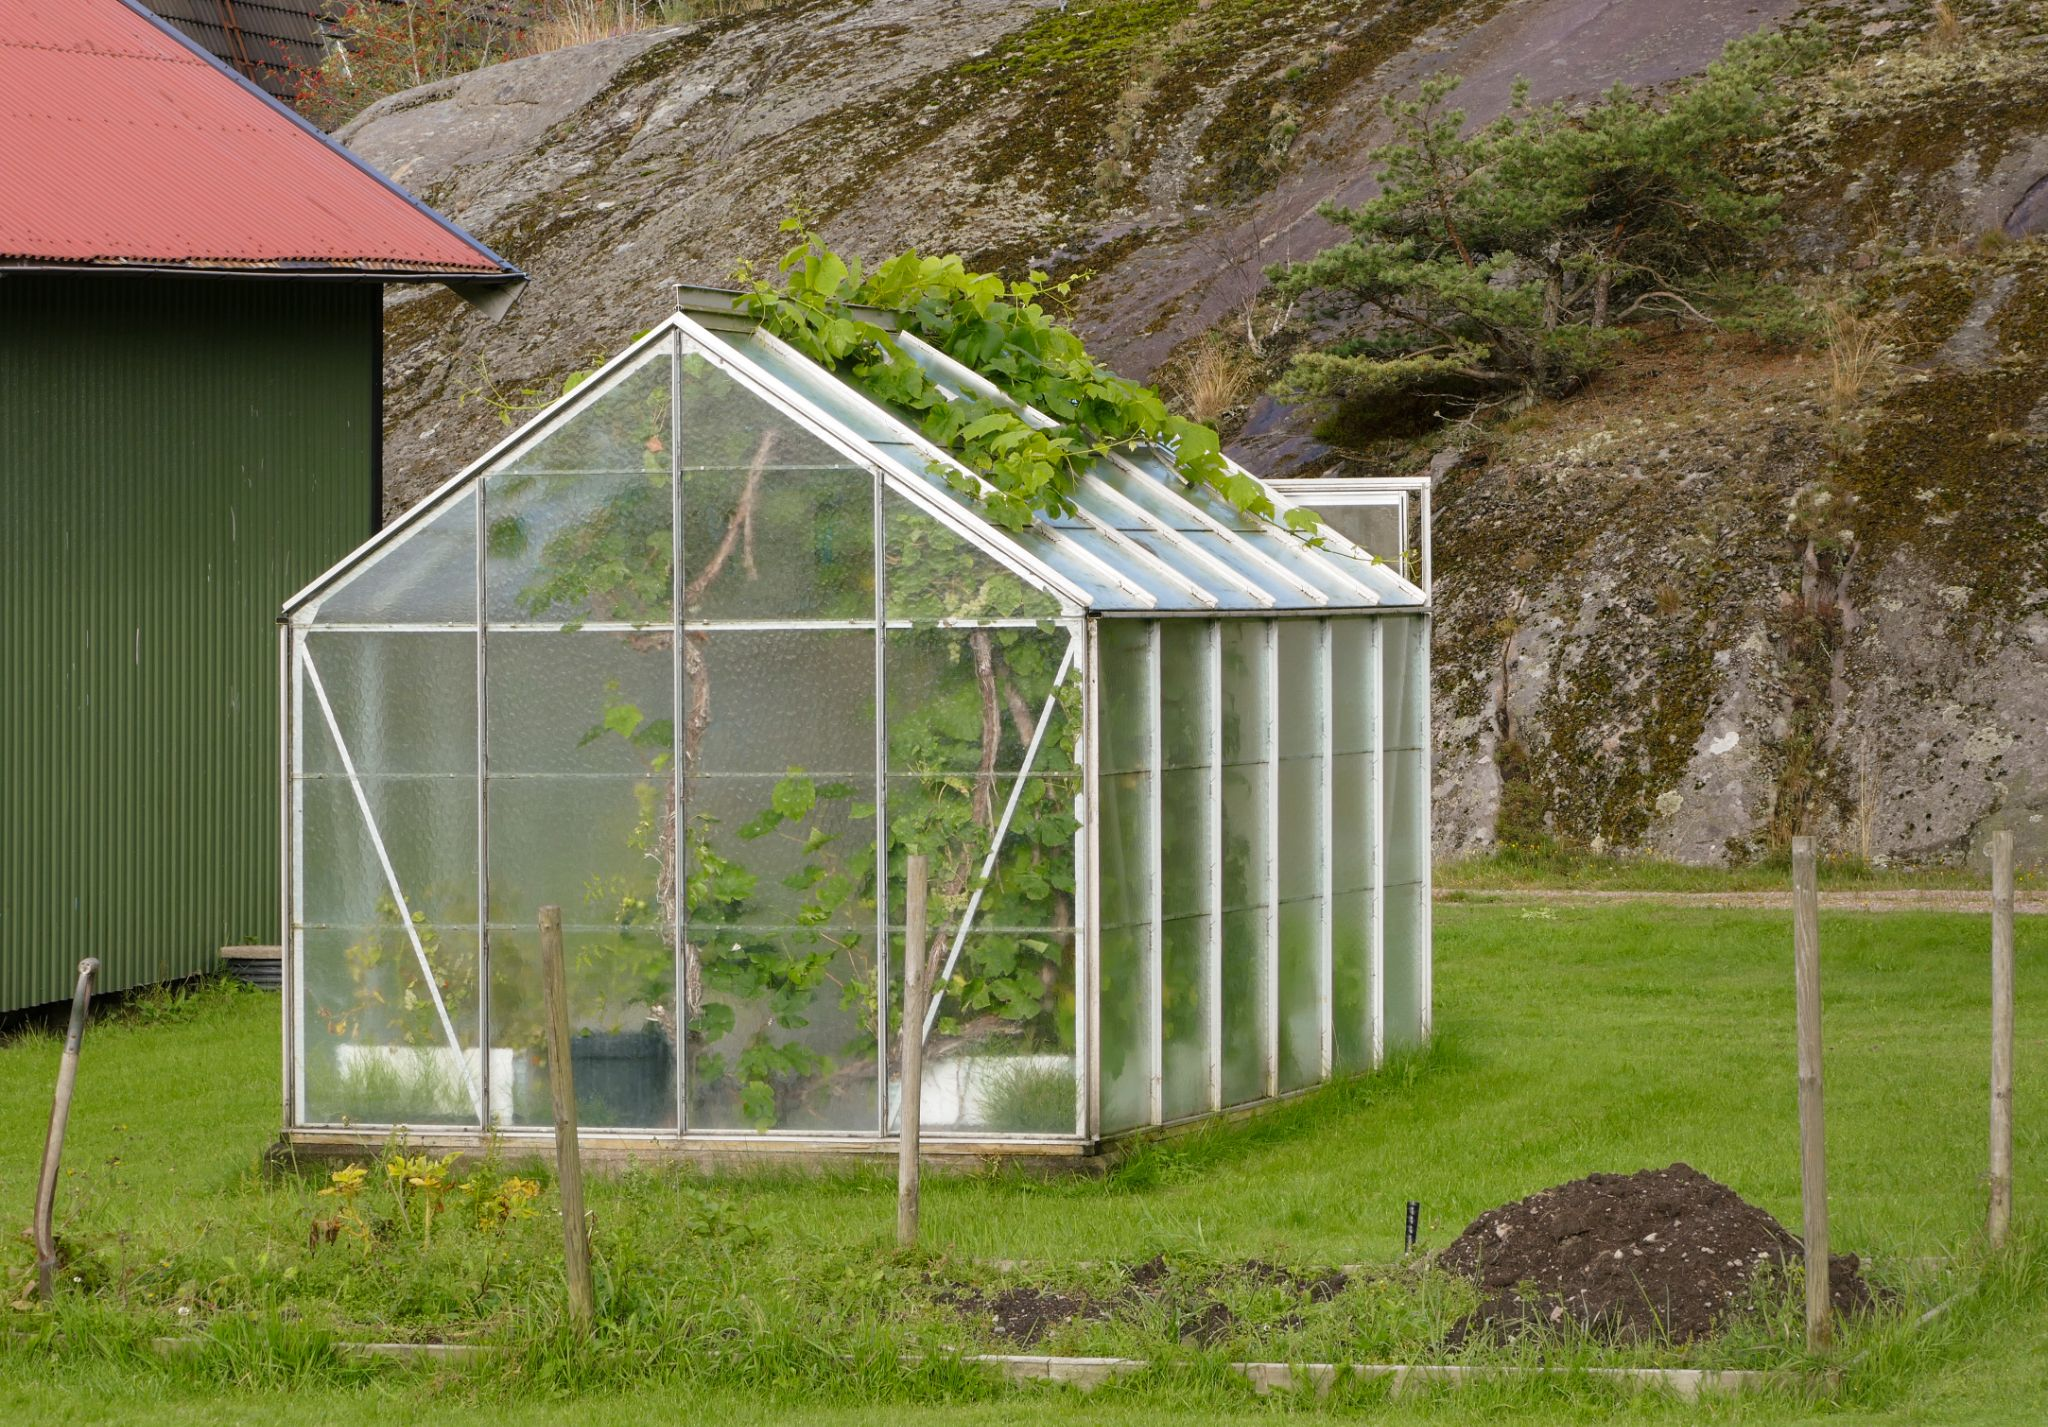 Greenhouse Flooring-How To Get The Best Greenhouse Flooring